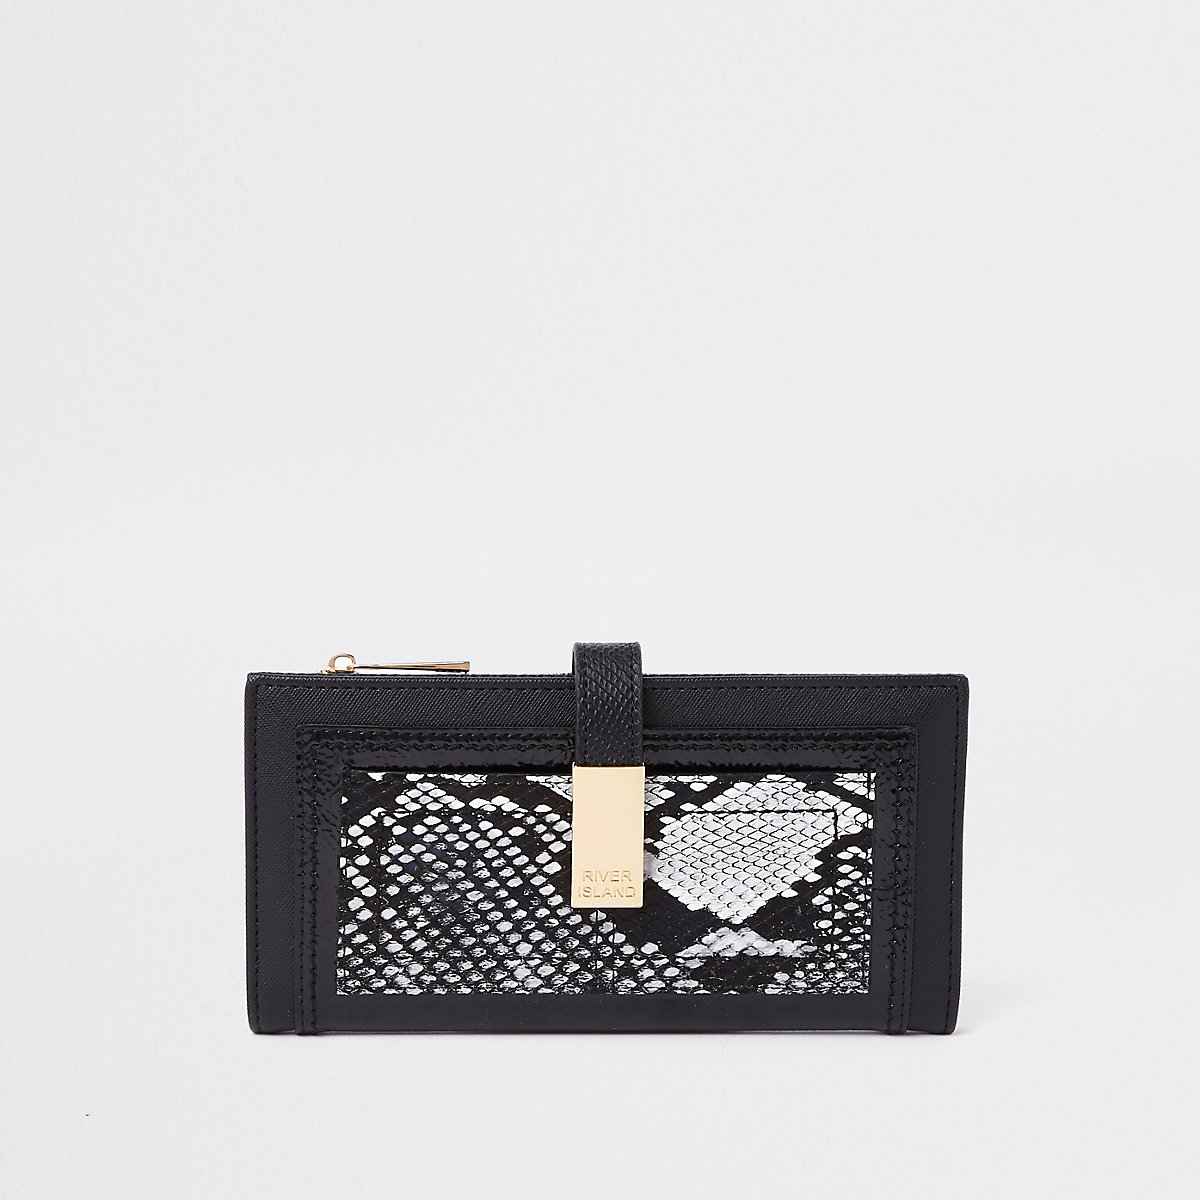 Black snake print front pocket purse